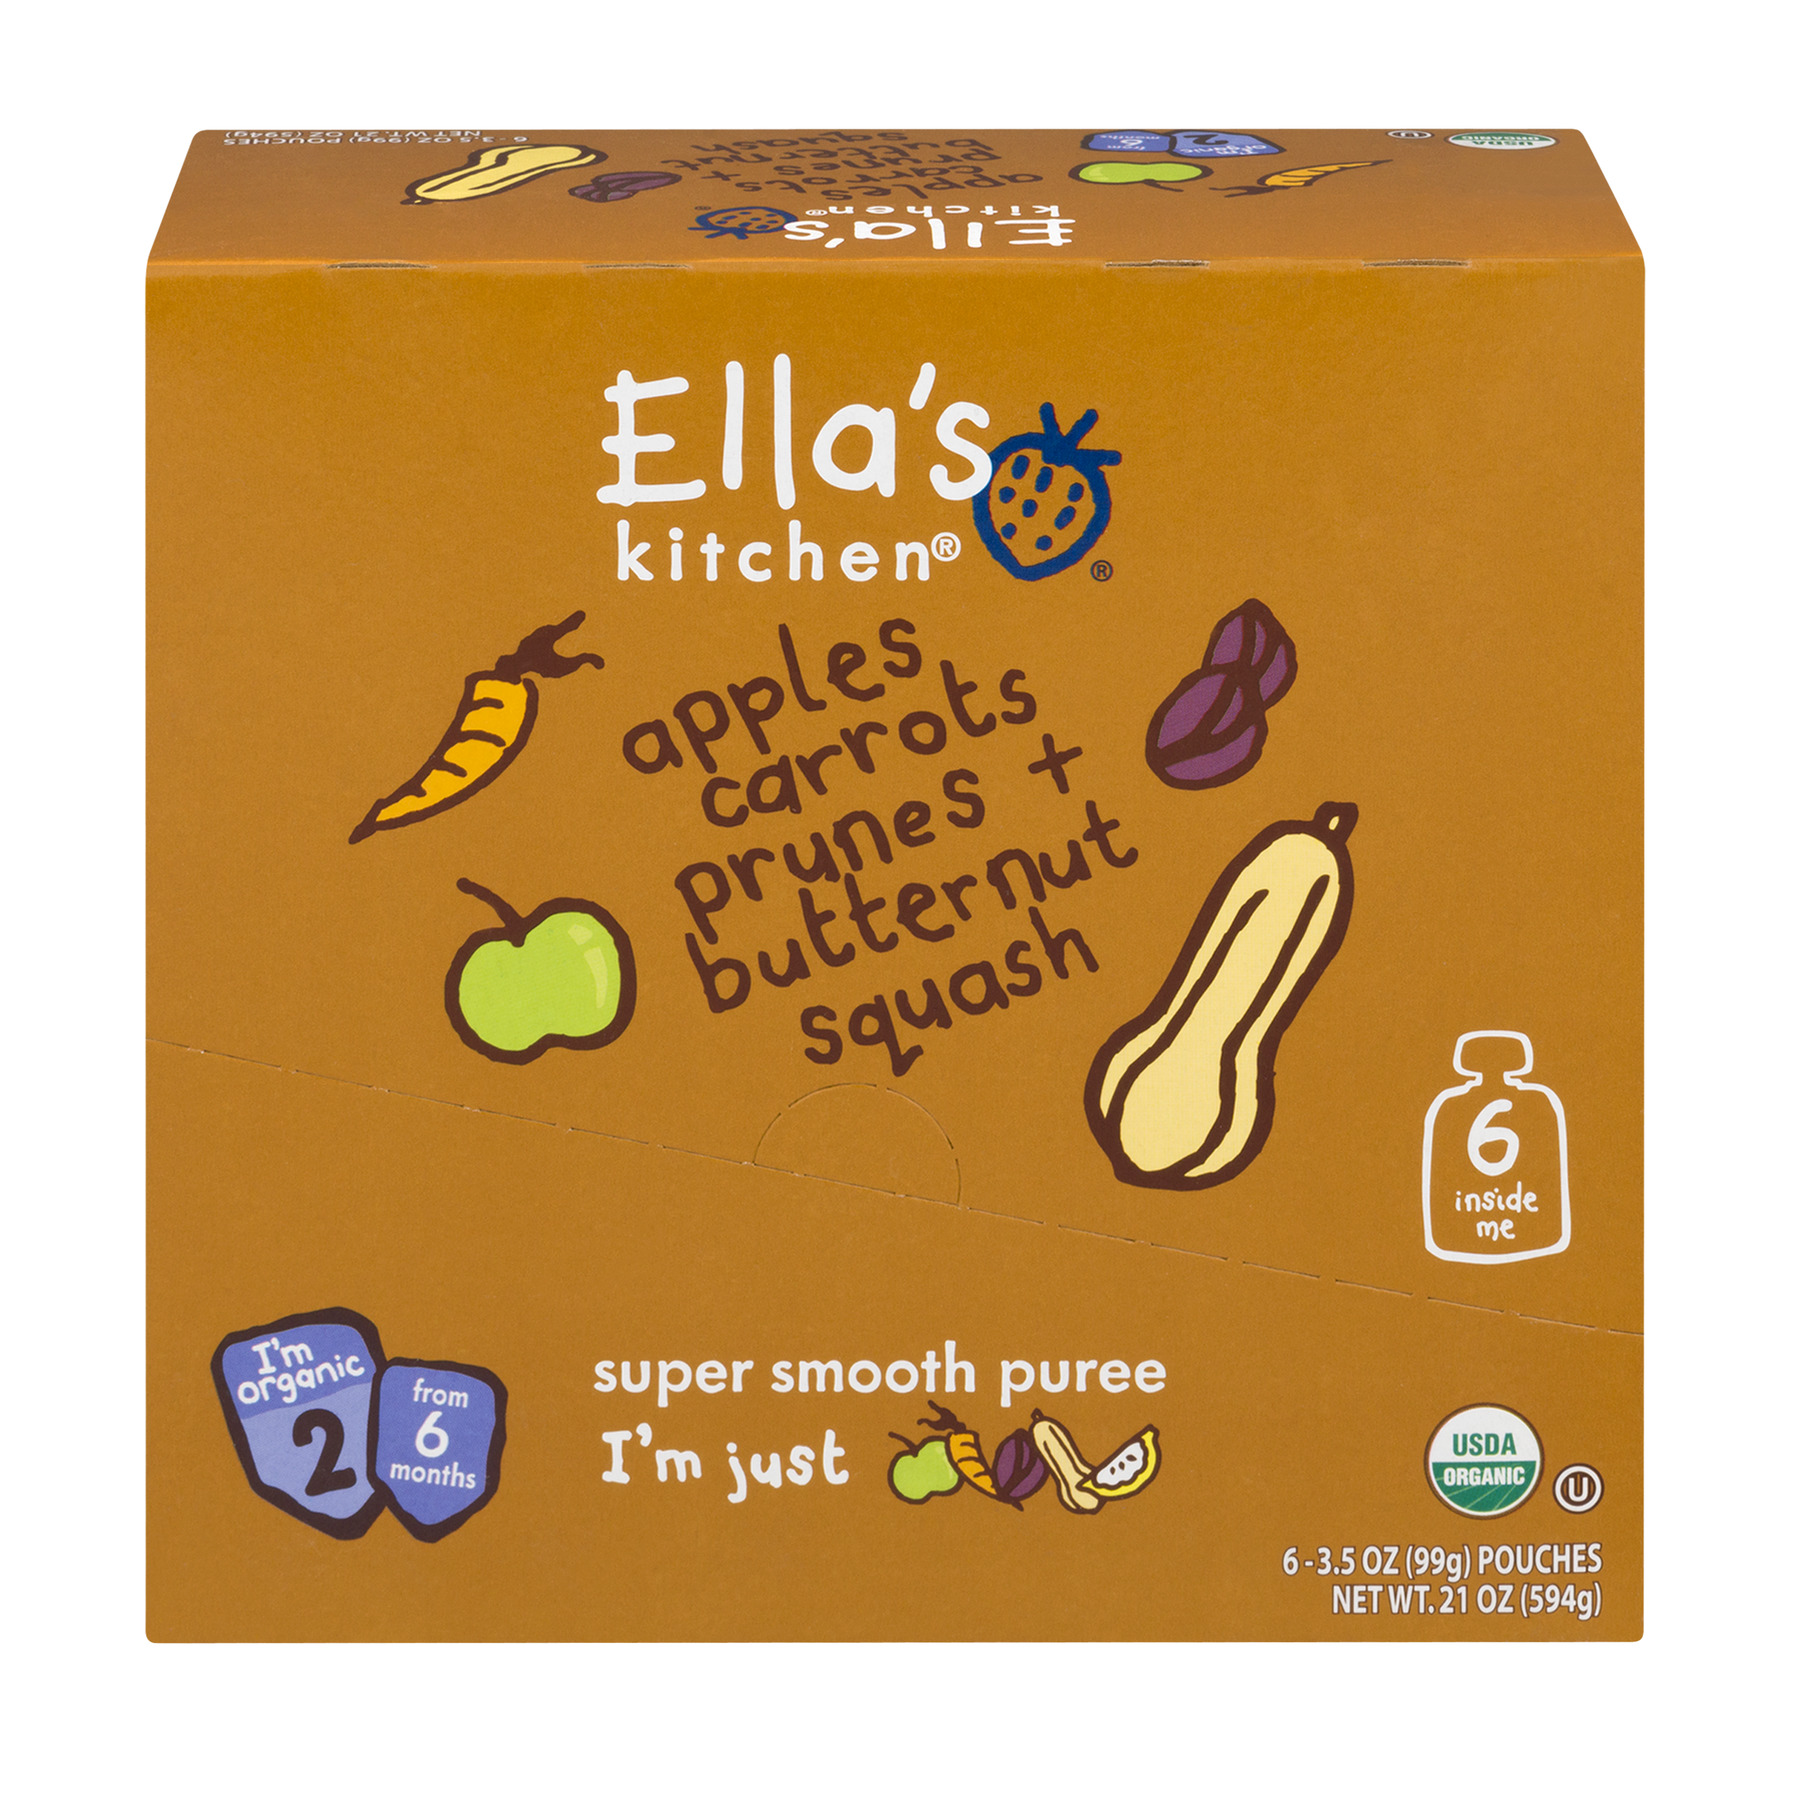 (6 Pack) Ella's Kitchen 6+ Months Organic Baby Food, Apples Carrots Prunes + Butternut Squash, 3.5 oz